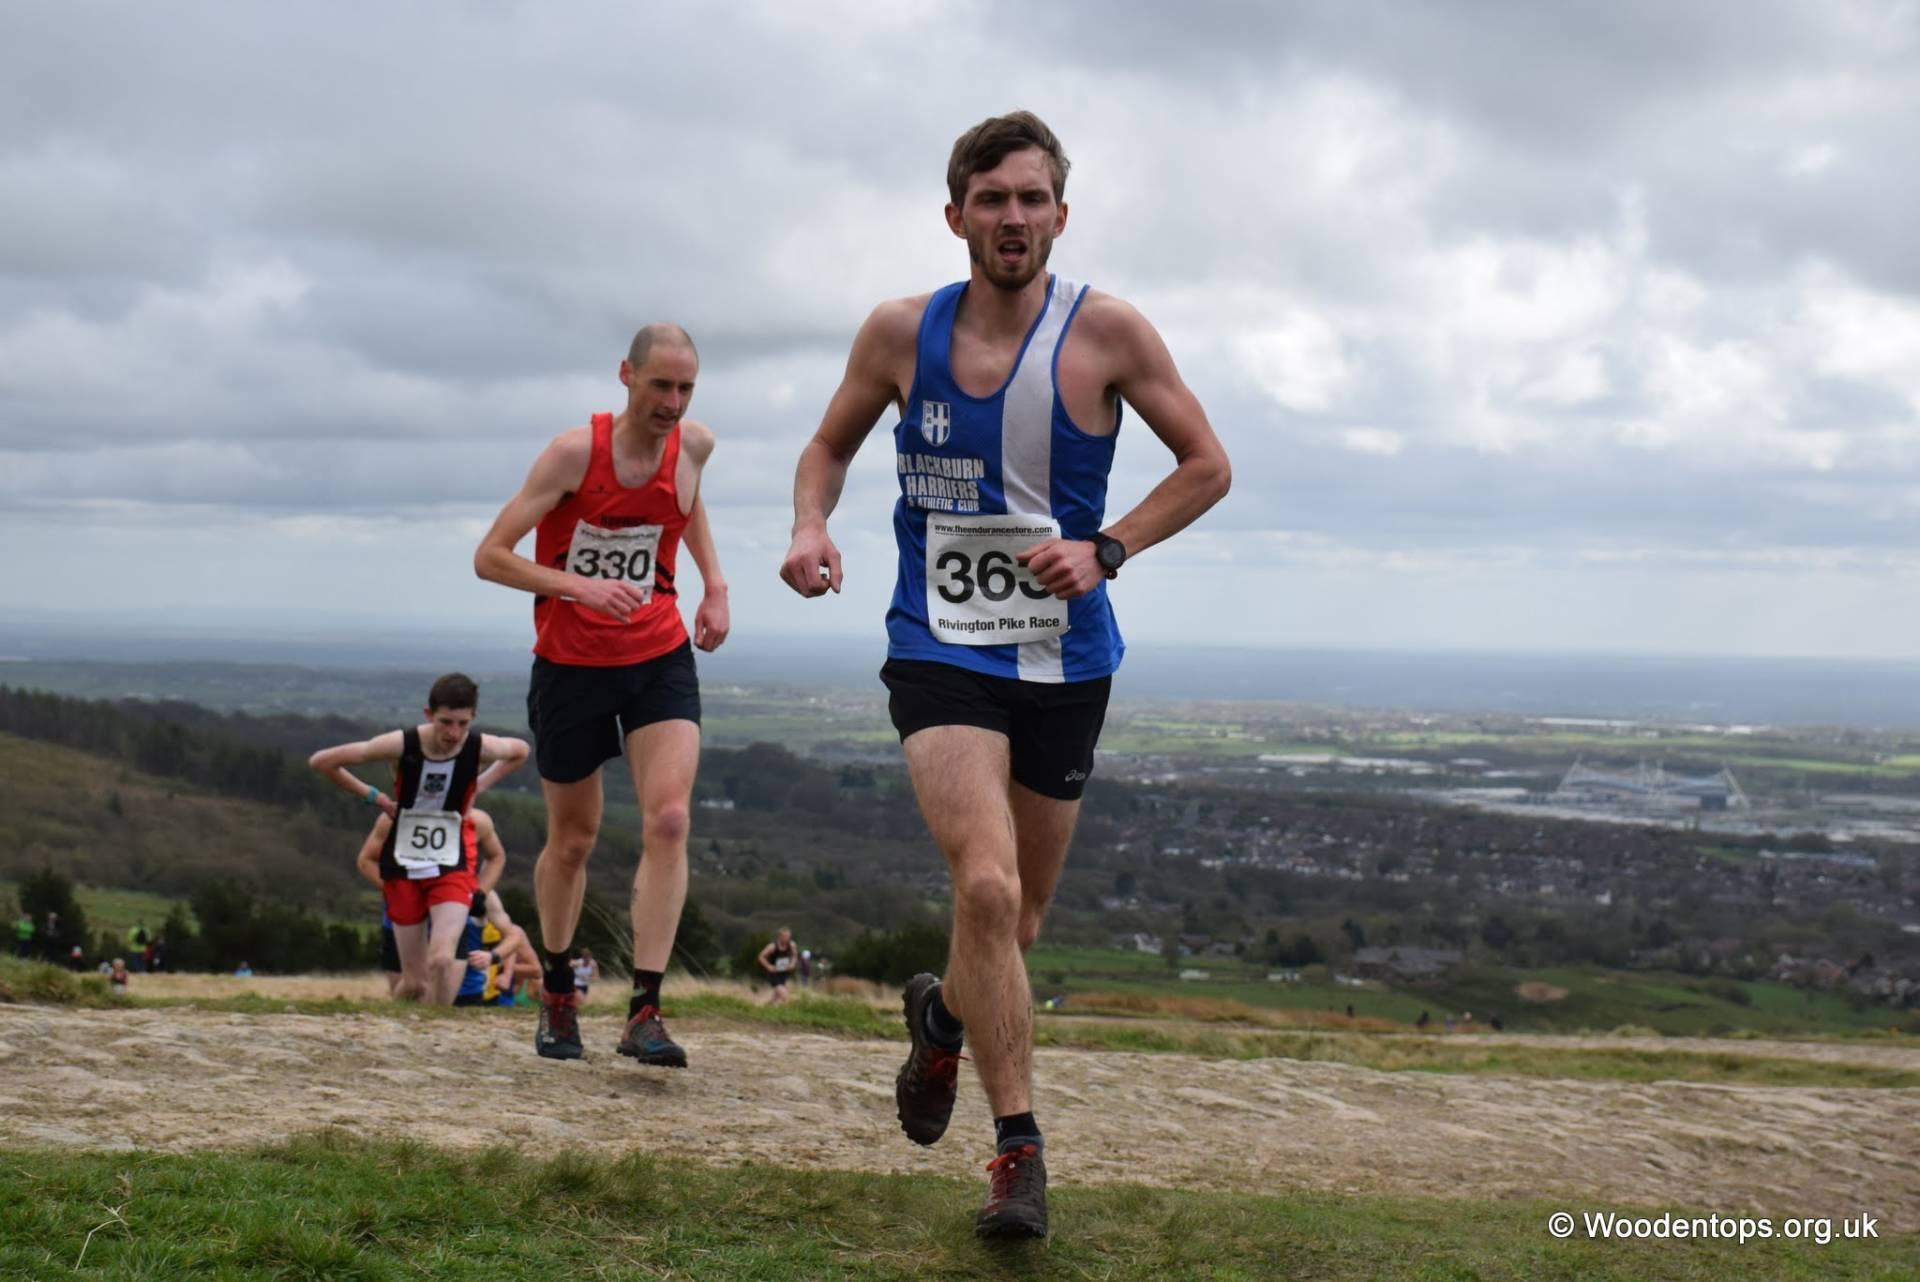 New PB's for Harriers at Salford 10k – Rivington Pike – Top ten for Richard & Jack at Clitheroe – 10k PB for Joe in Isle of Man